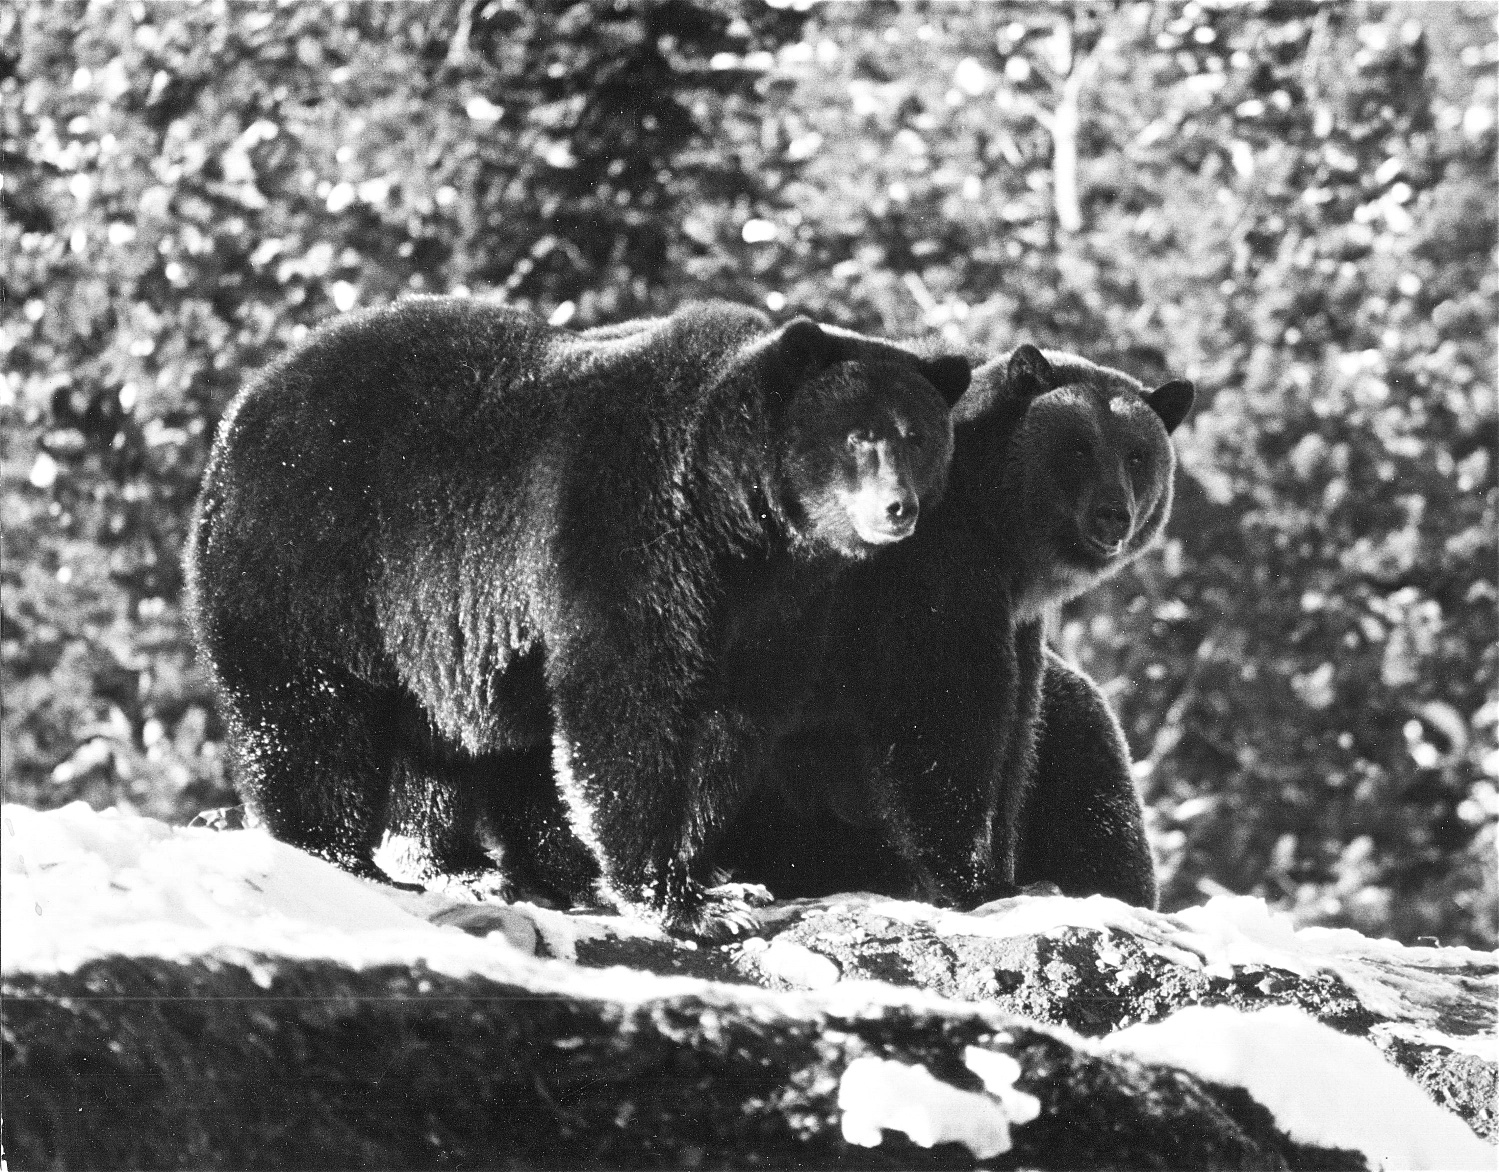 This is what you'd look like if you ate Chateau Lake Louise garbage every day. These grizzly bears were photographed at the Lake Louise dump in 1969. It was a different world for bears back then.